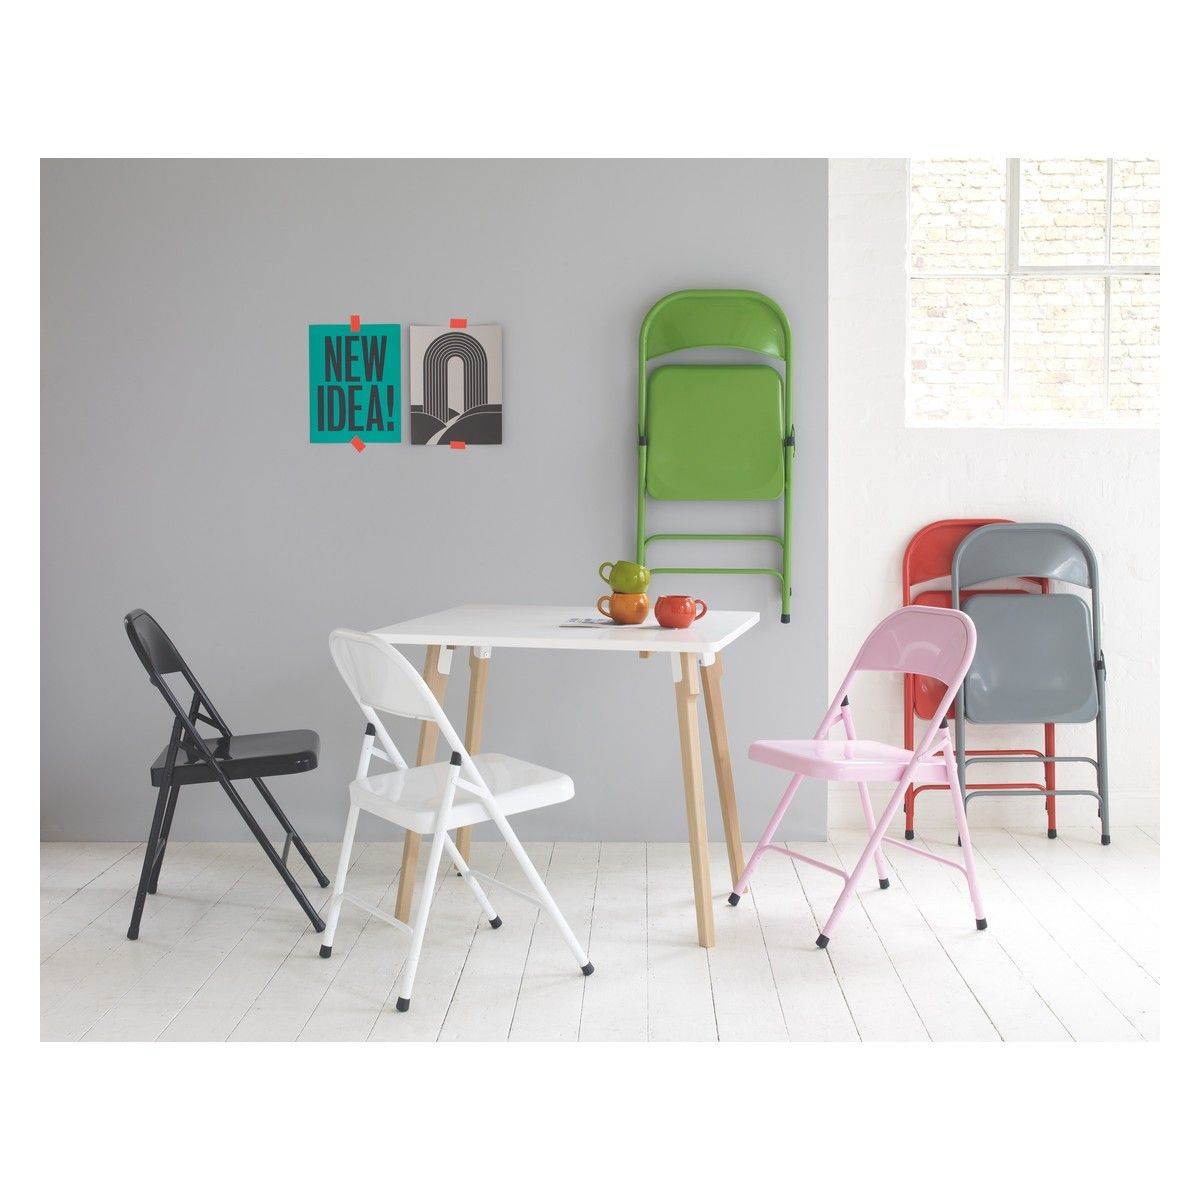 The Macadam Pink Metal Folding Chair Is Versatile And Great For Dining Occasional Use Buy Now At Habitat UK